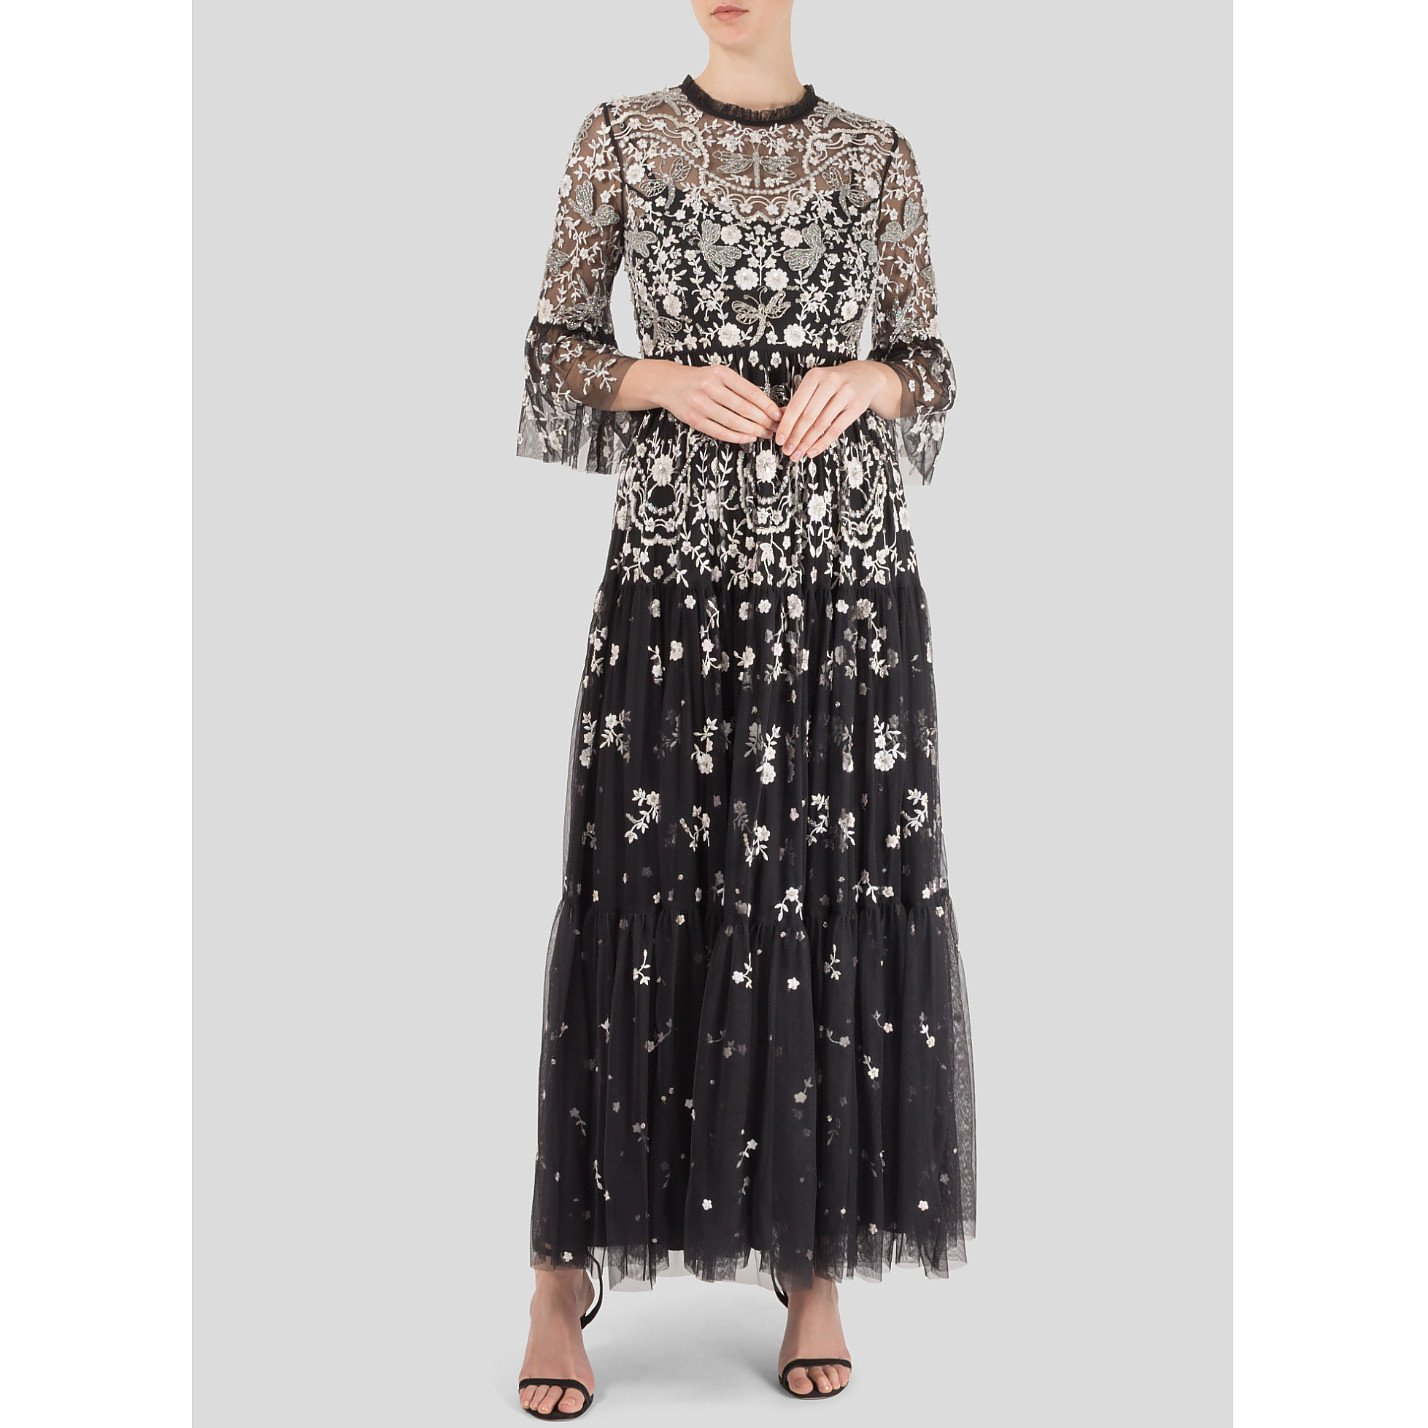 Needle & Thread Dragonfly Embellished Tulle Gown